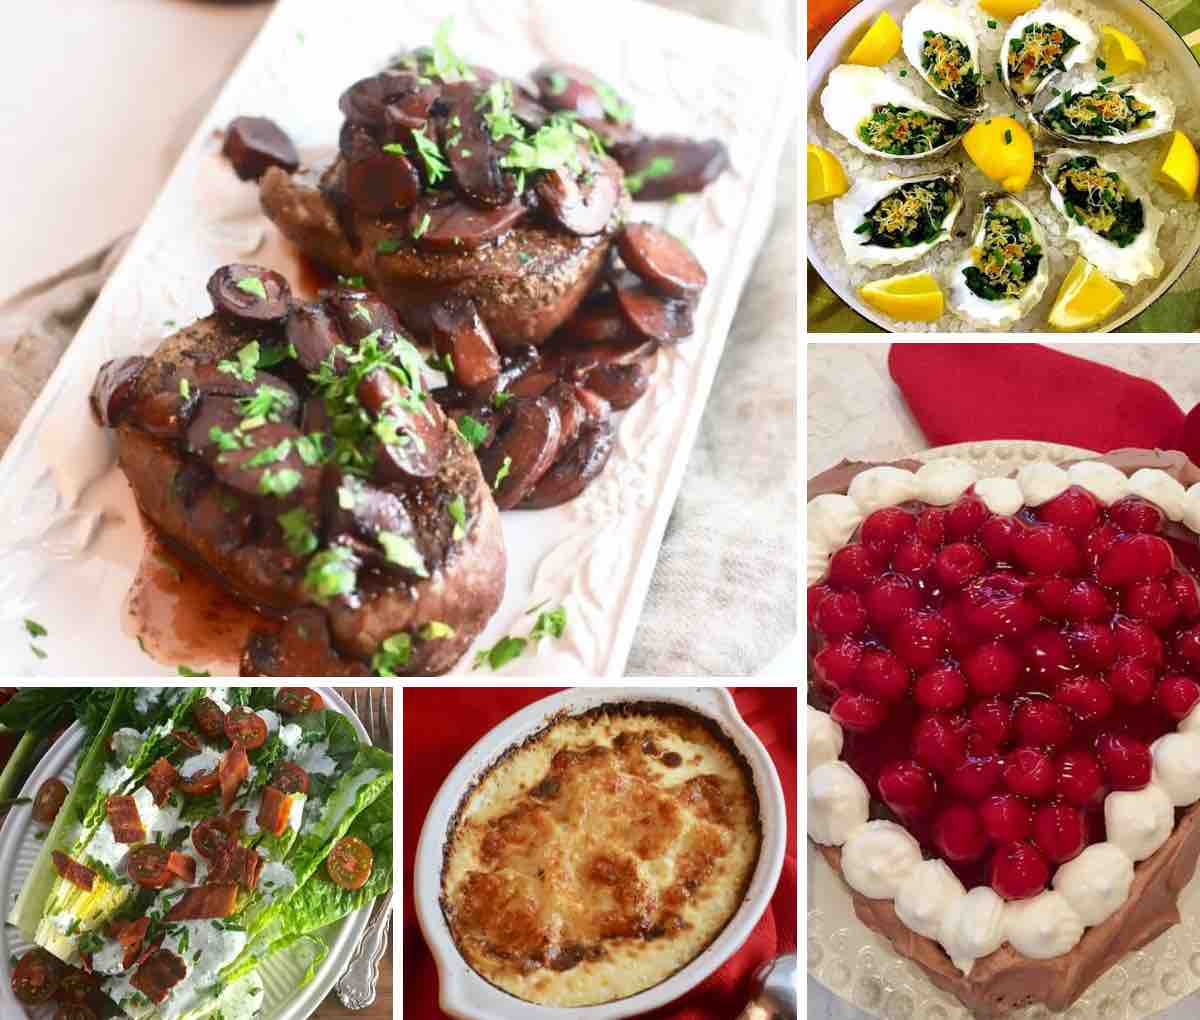 A collage of menu ideas for Valentine's Day including steak, potatoes and dessert.